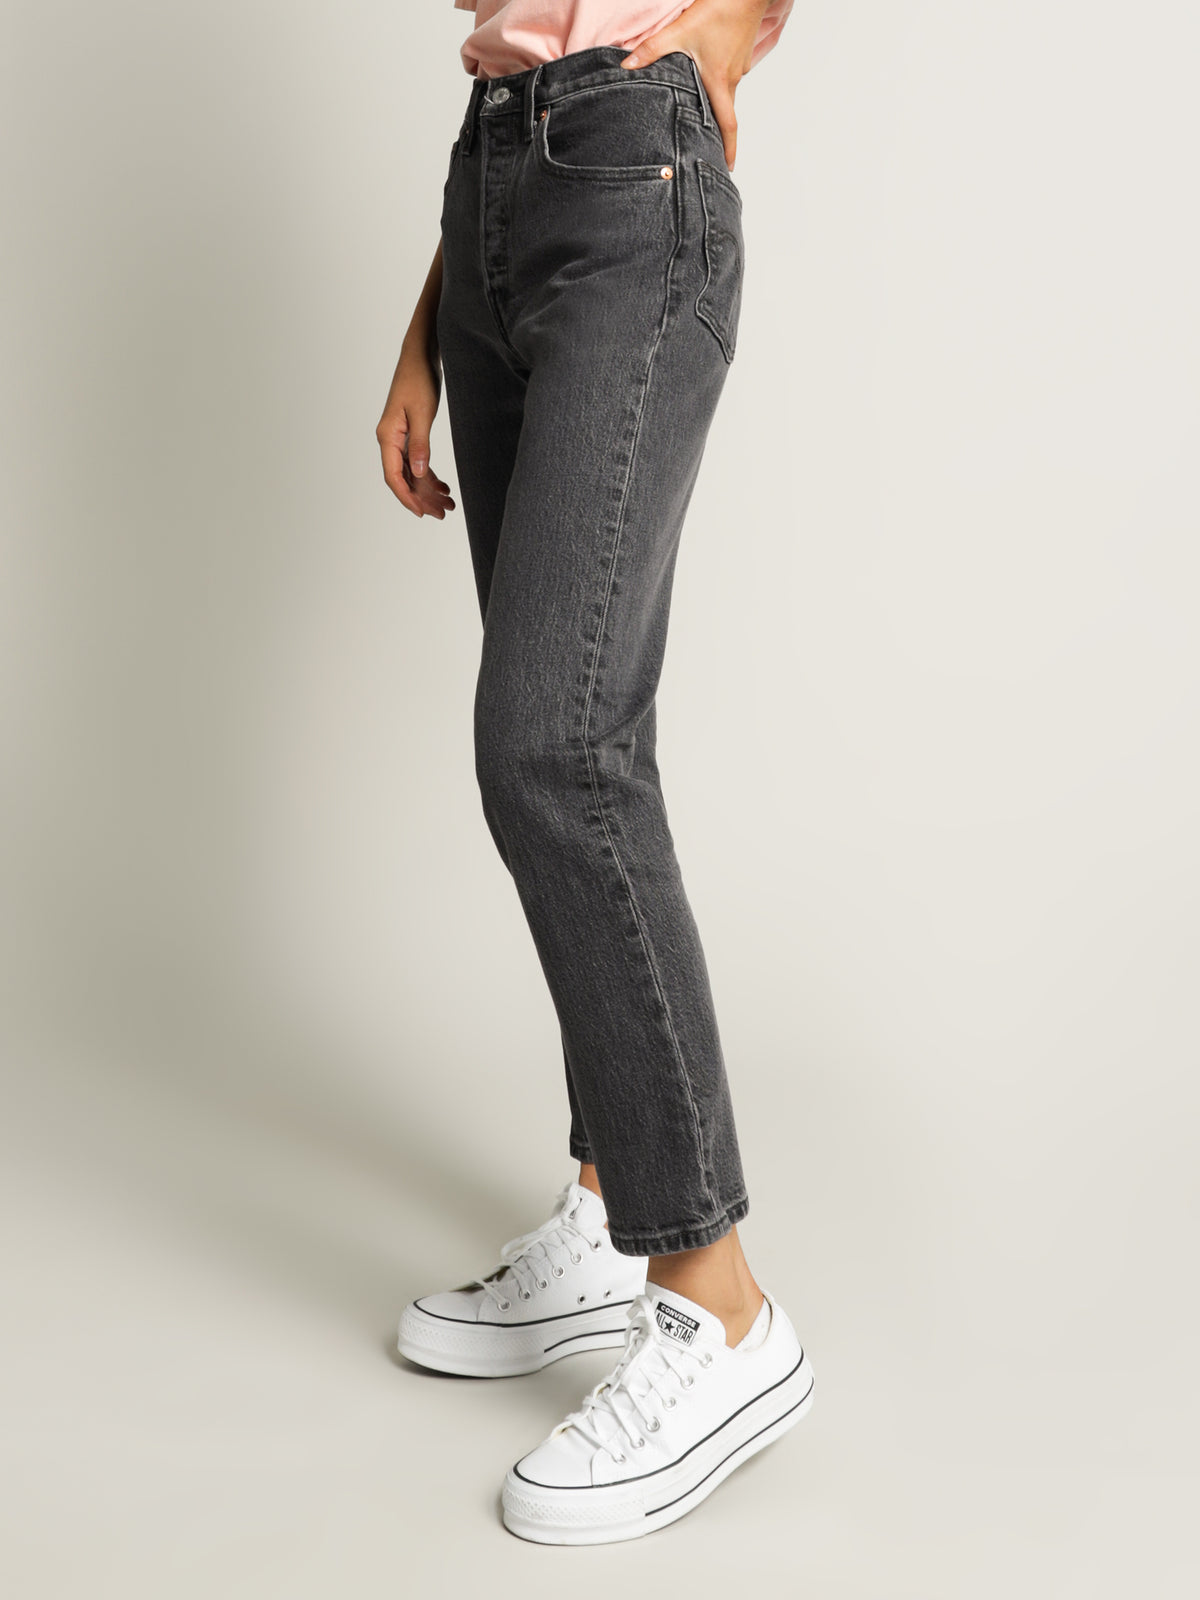 501 Crop Cabo Jeans in Faded Black Denim